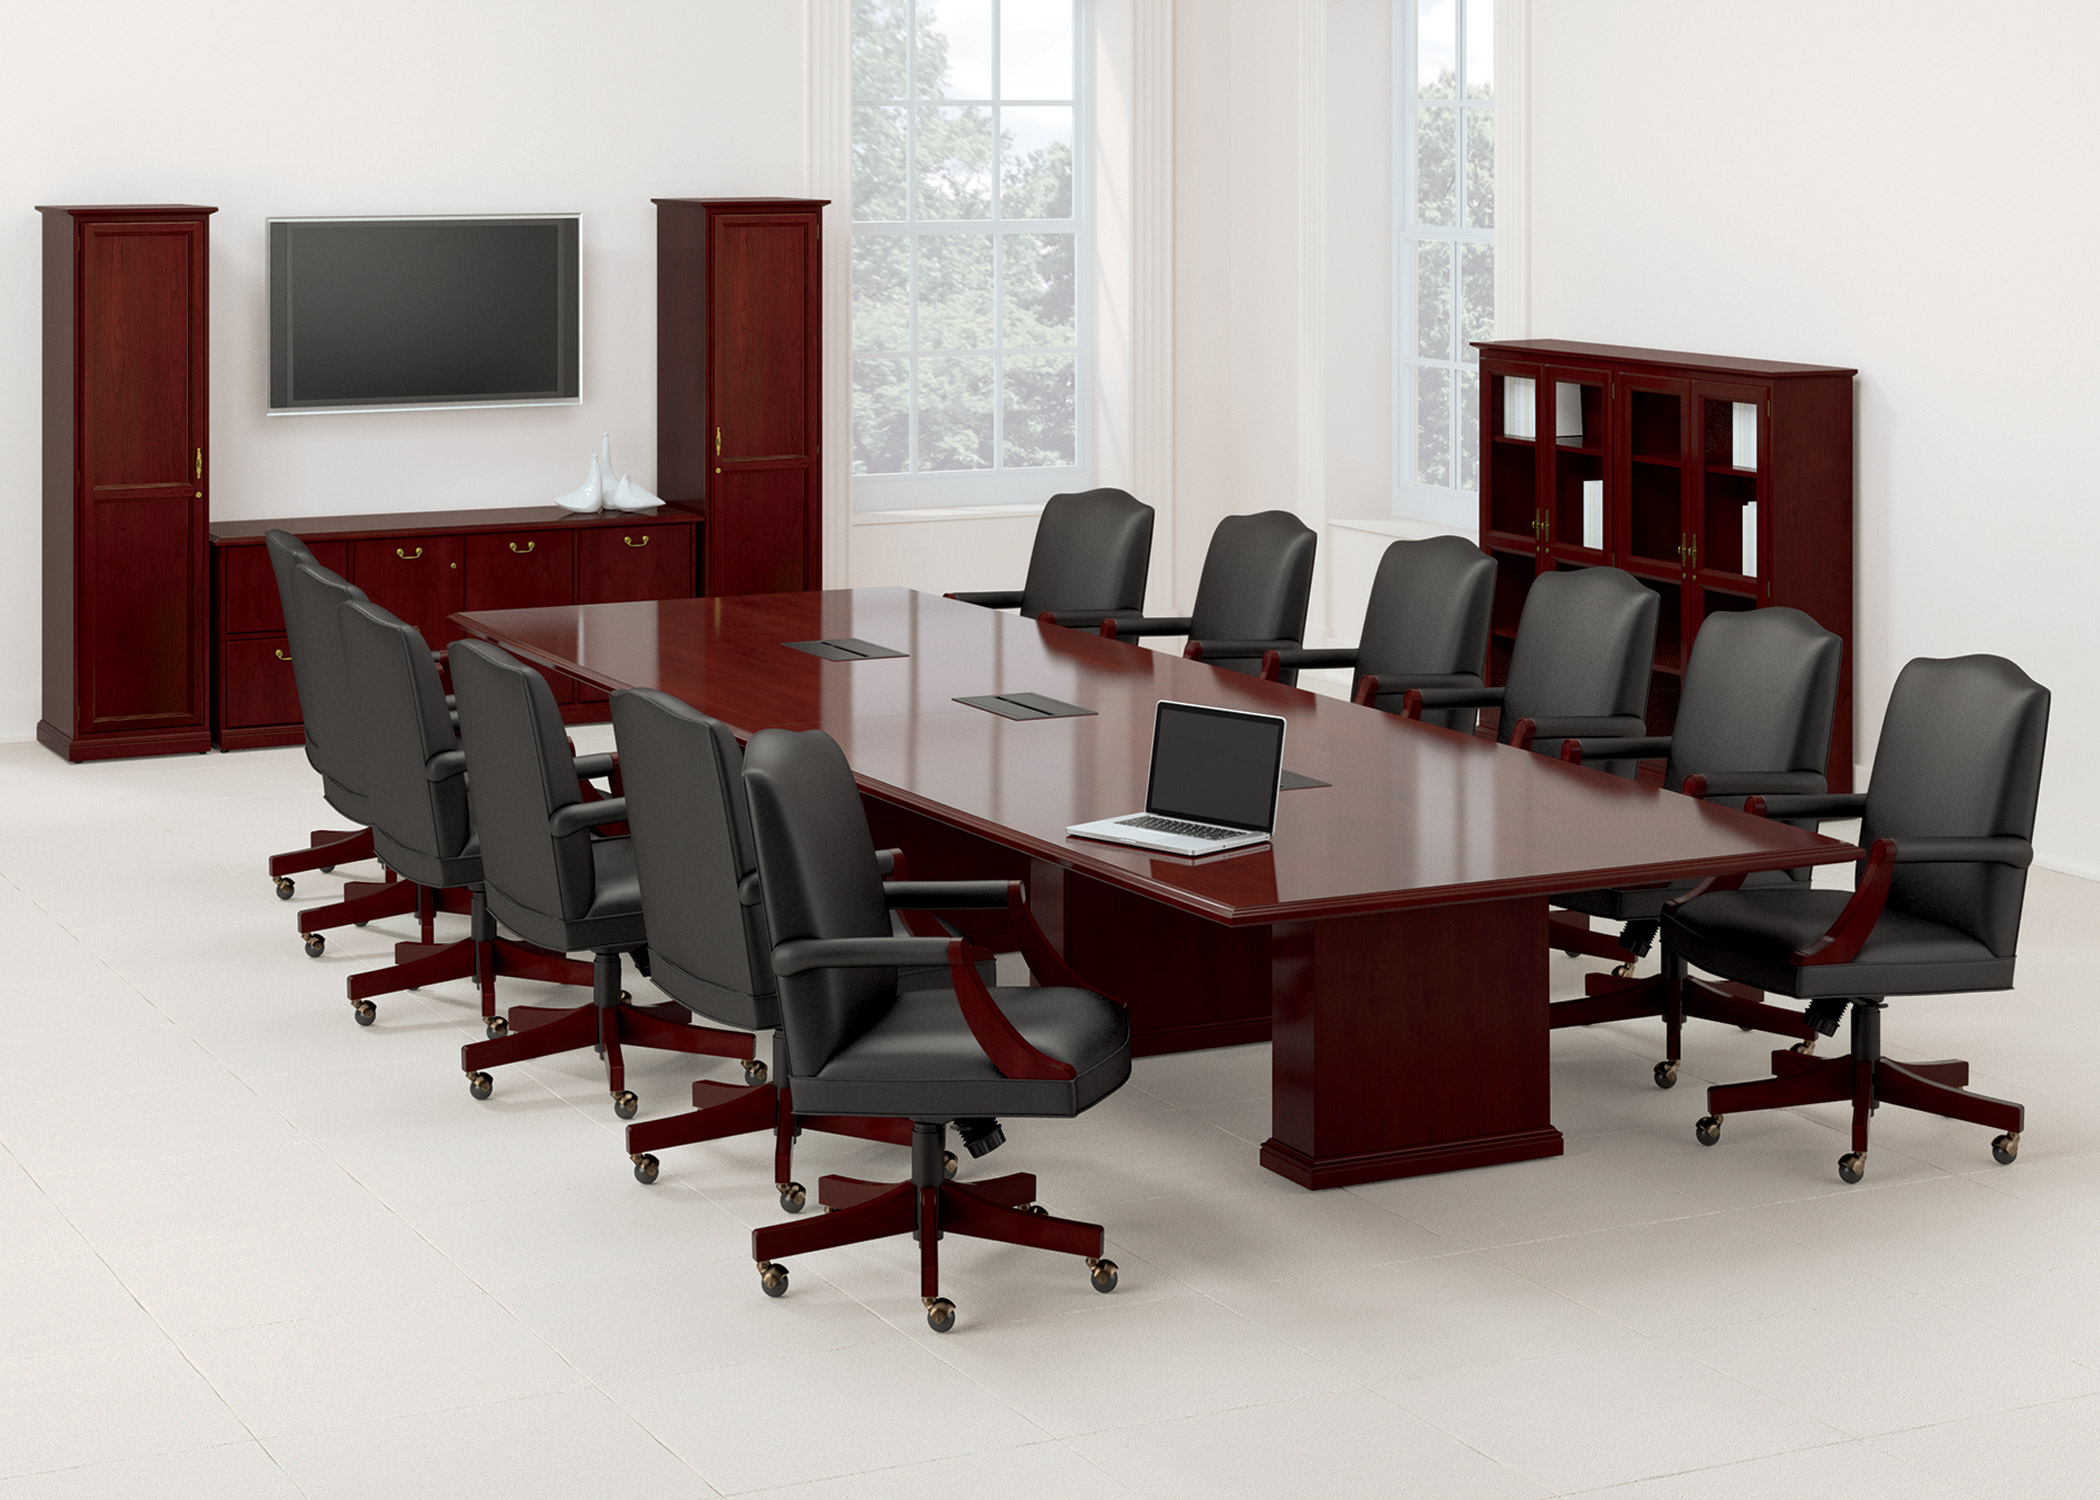 conference tables and chairs small recliner chair products national office furniture barrington